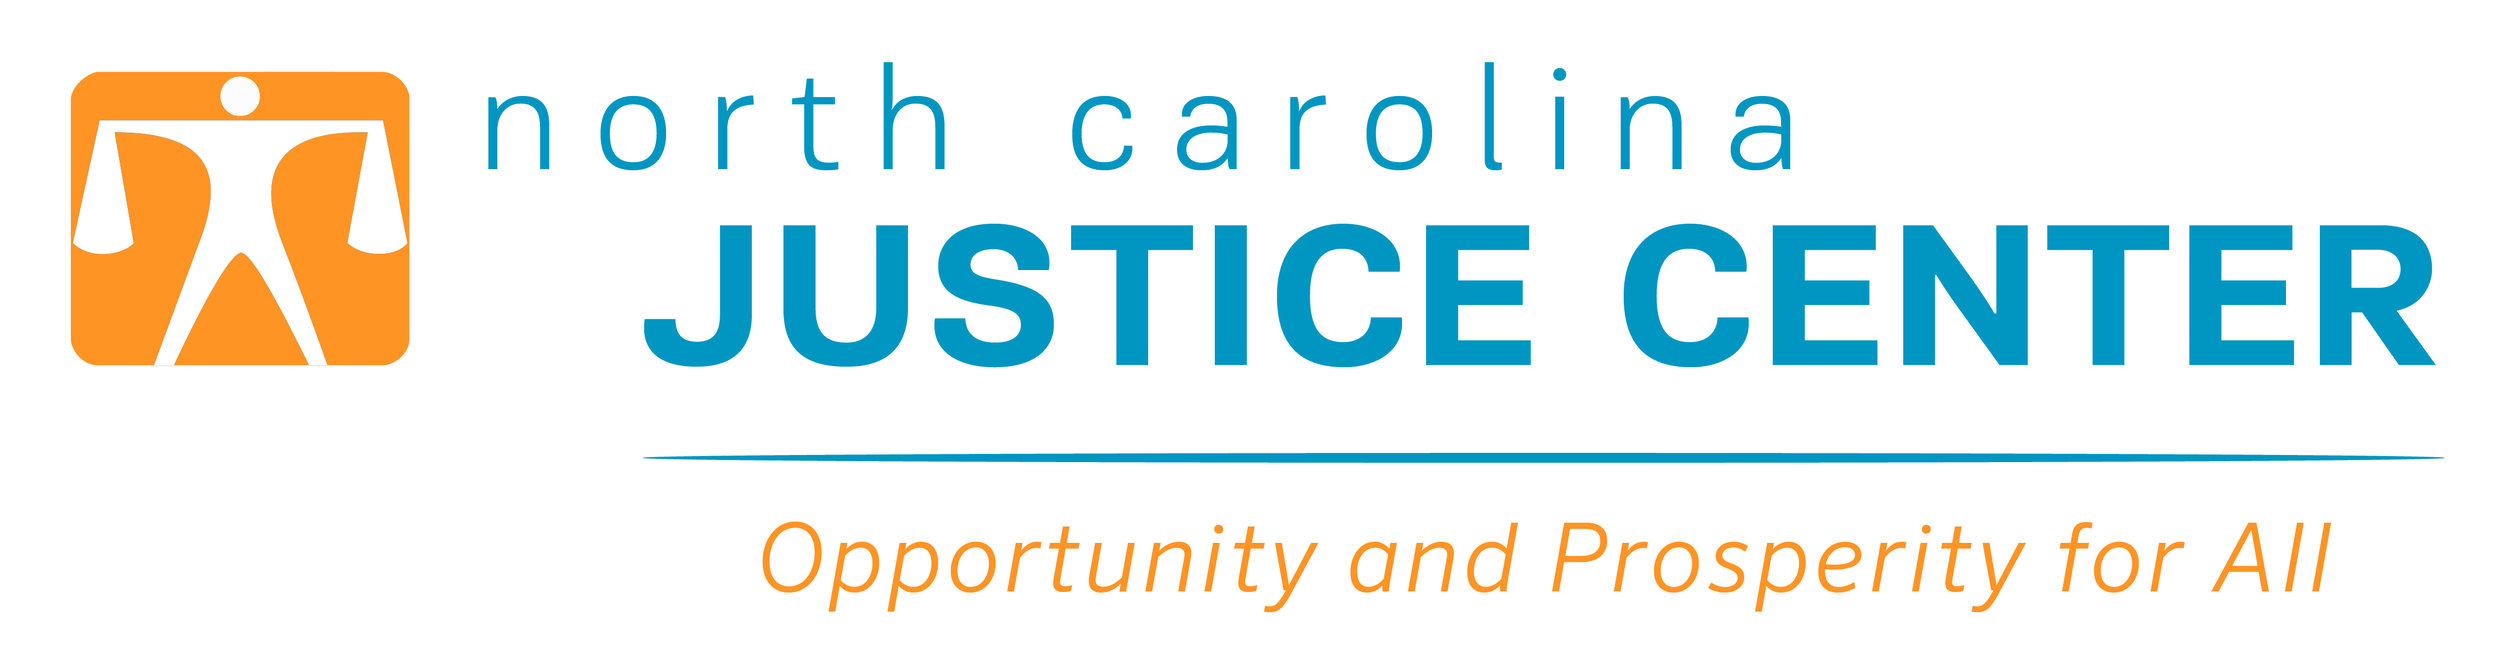 NC Justice Center-LOGO-2018--slogan.jpg